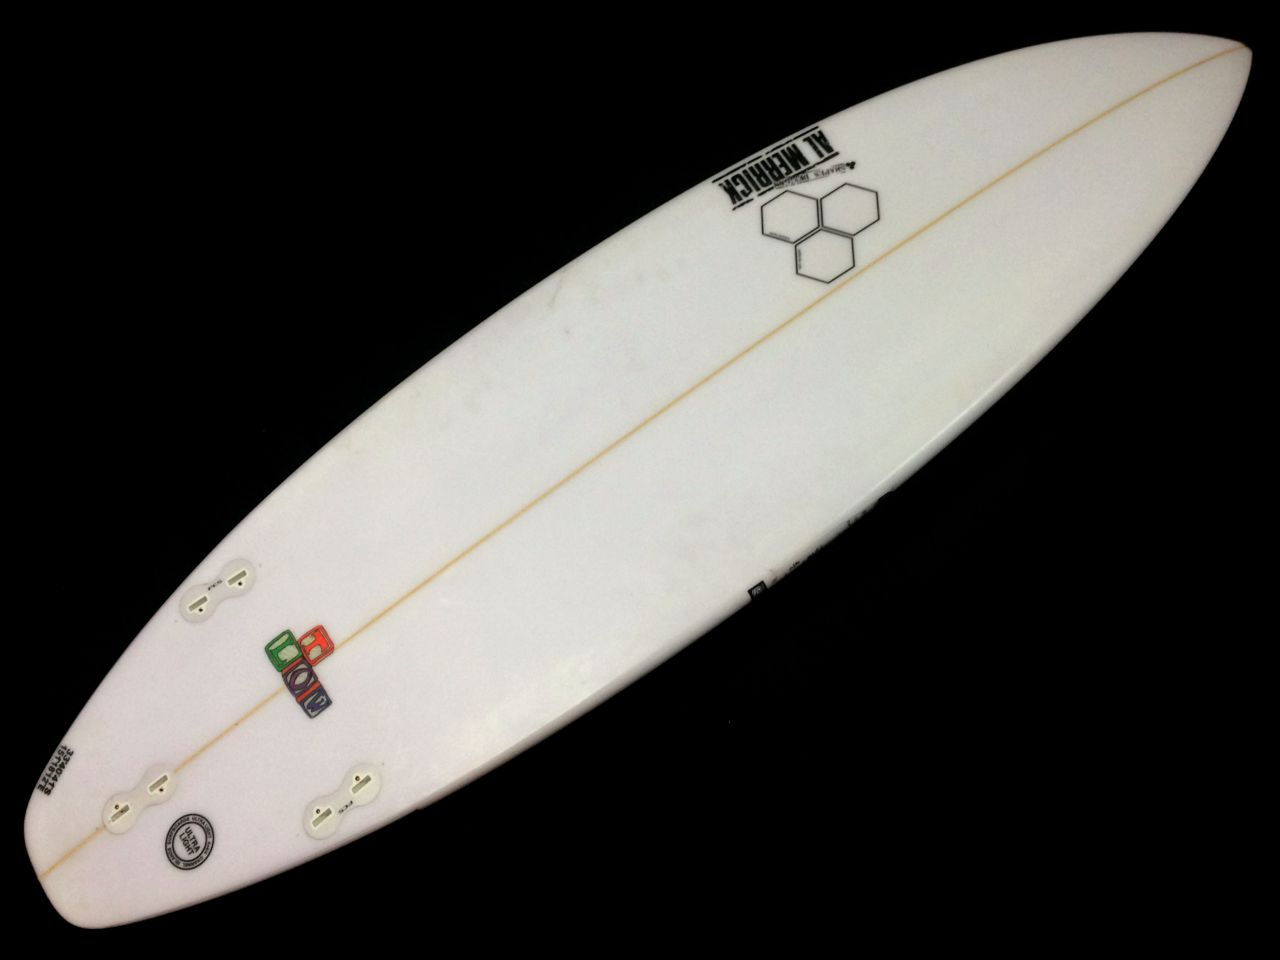 Secondhand Surfboards just in Hayden Shapes HS Love Buzz Channel Islands T-Low